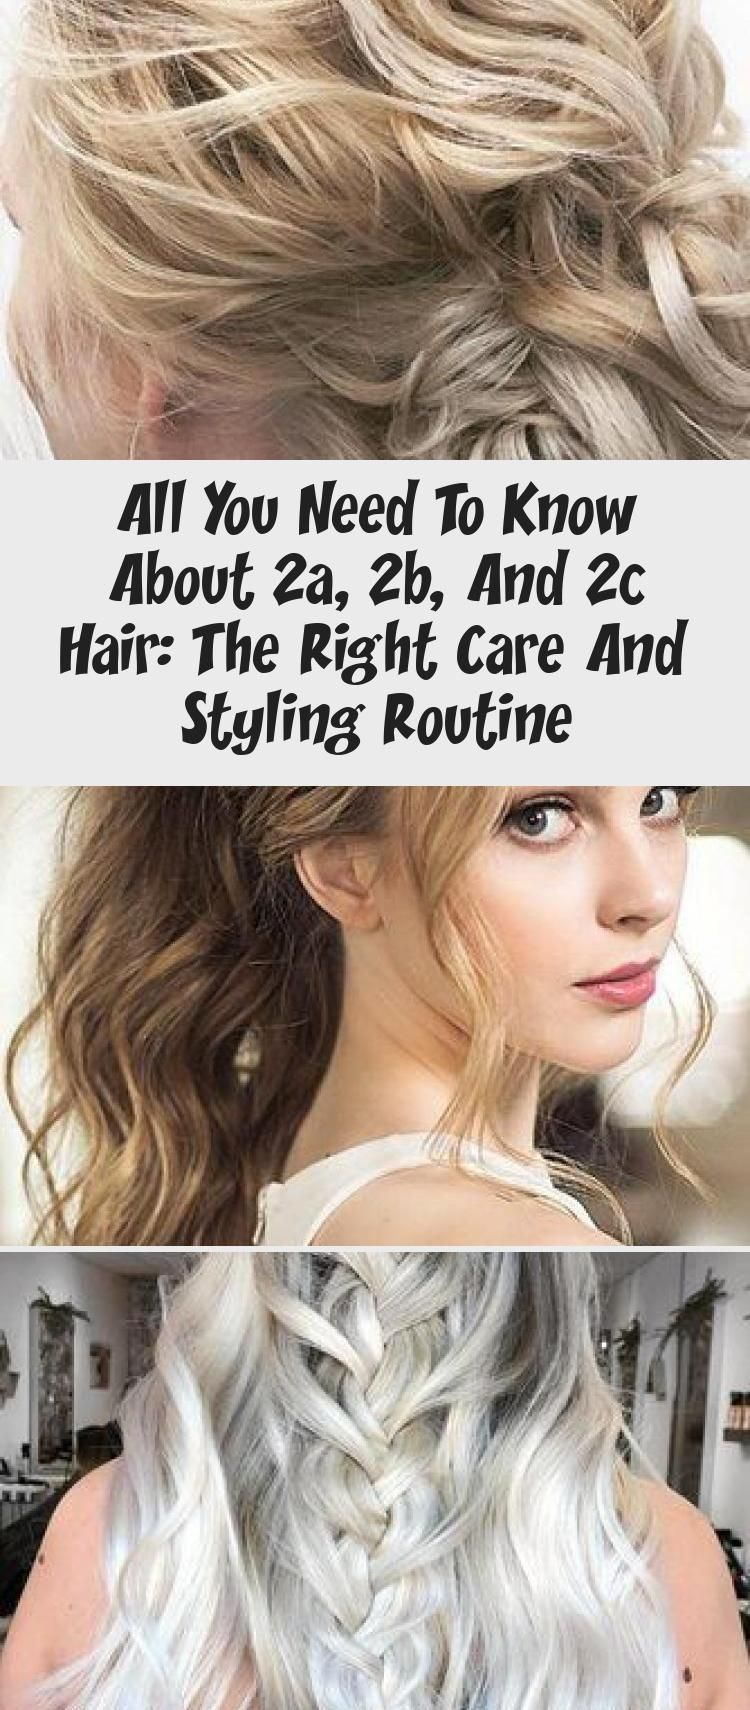 All You Need To Know About 2a 2b And 2c Hair The Right Care And